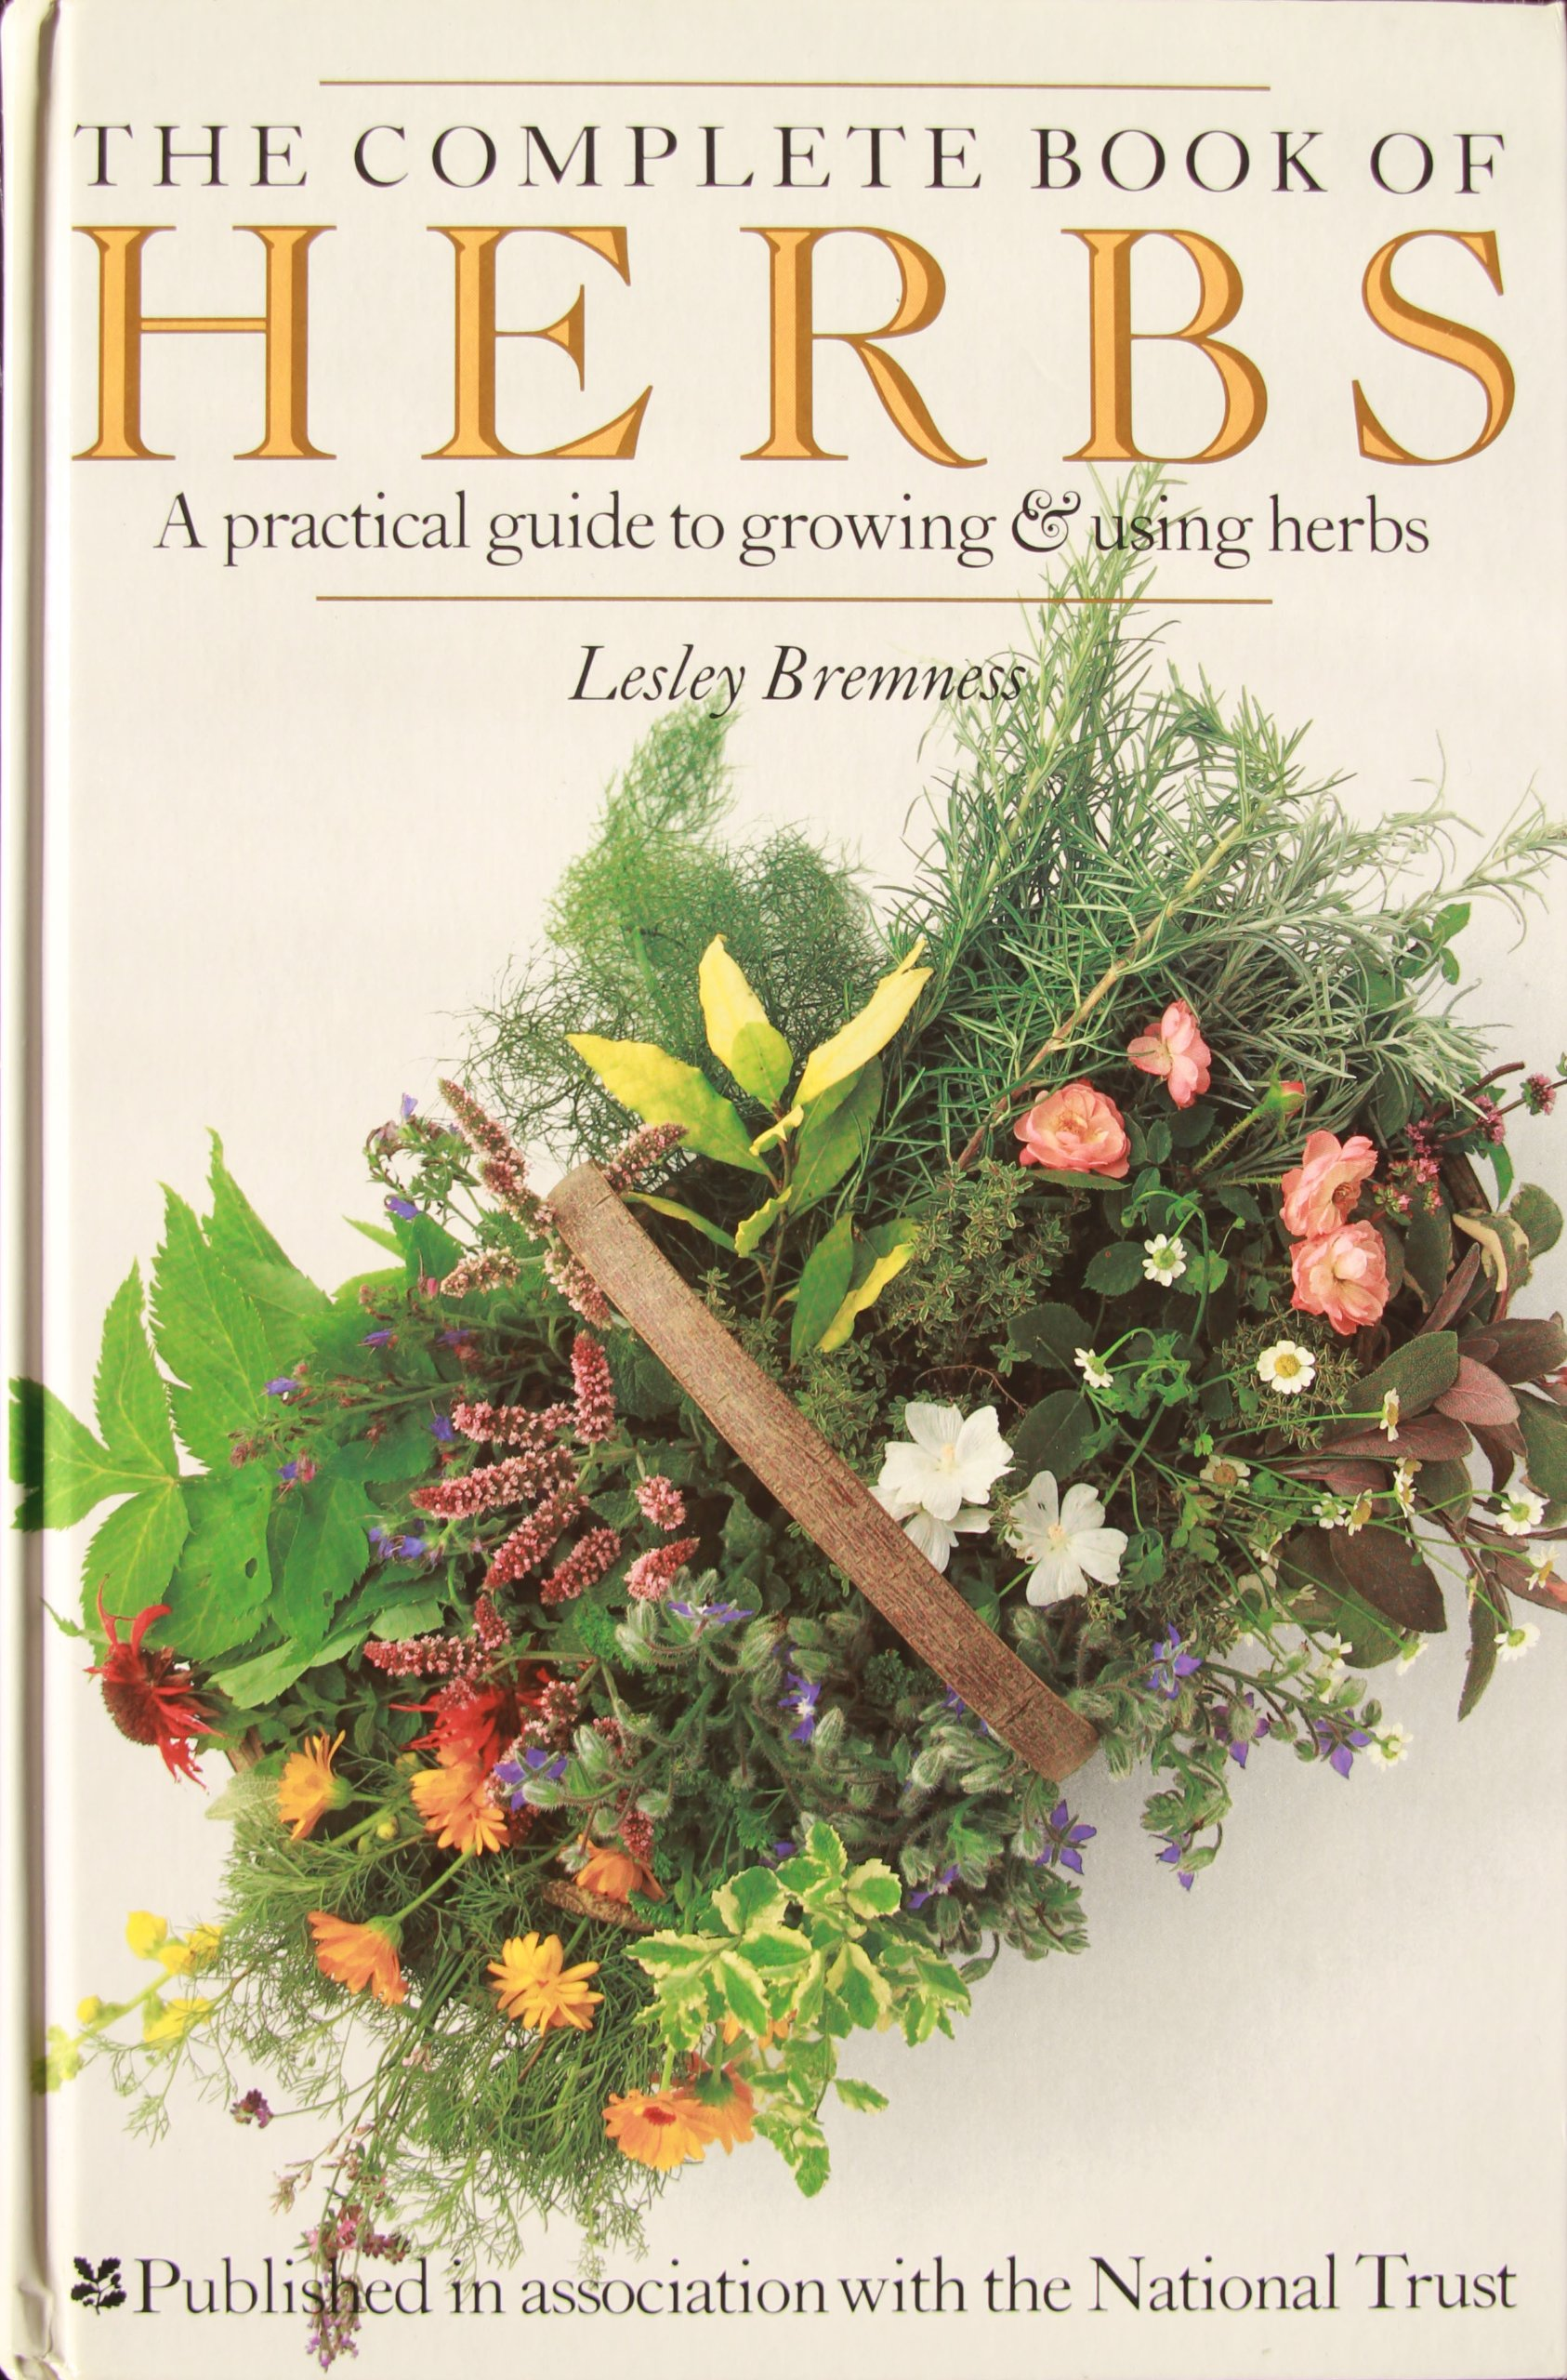 The Complete Book of Herbs: A Practical Guide to Growing and Using Herbs